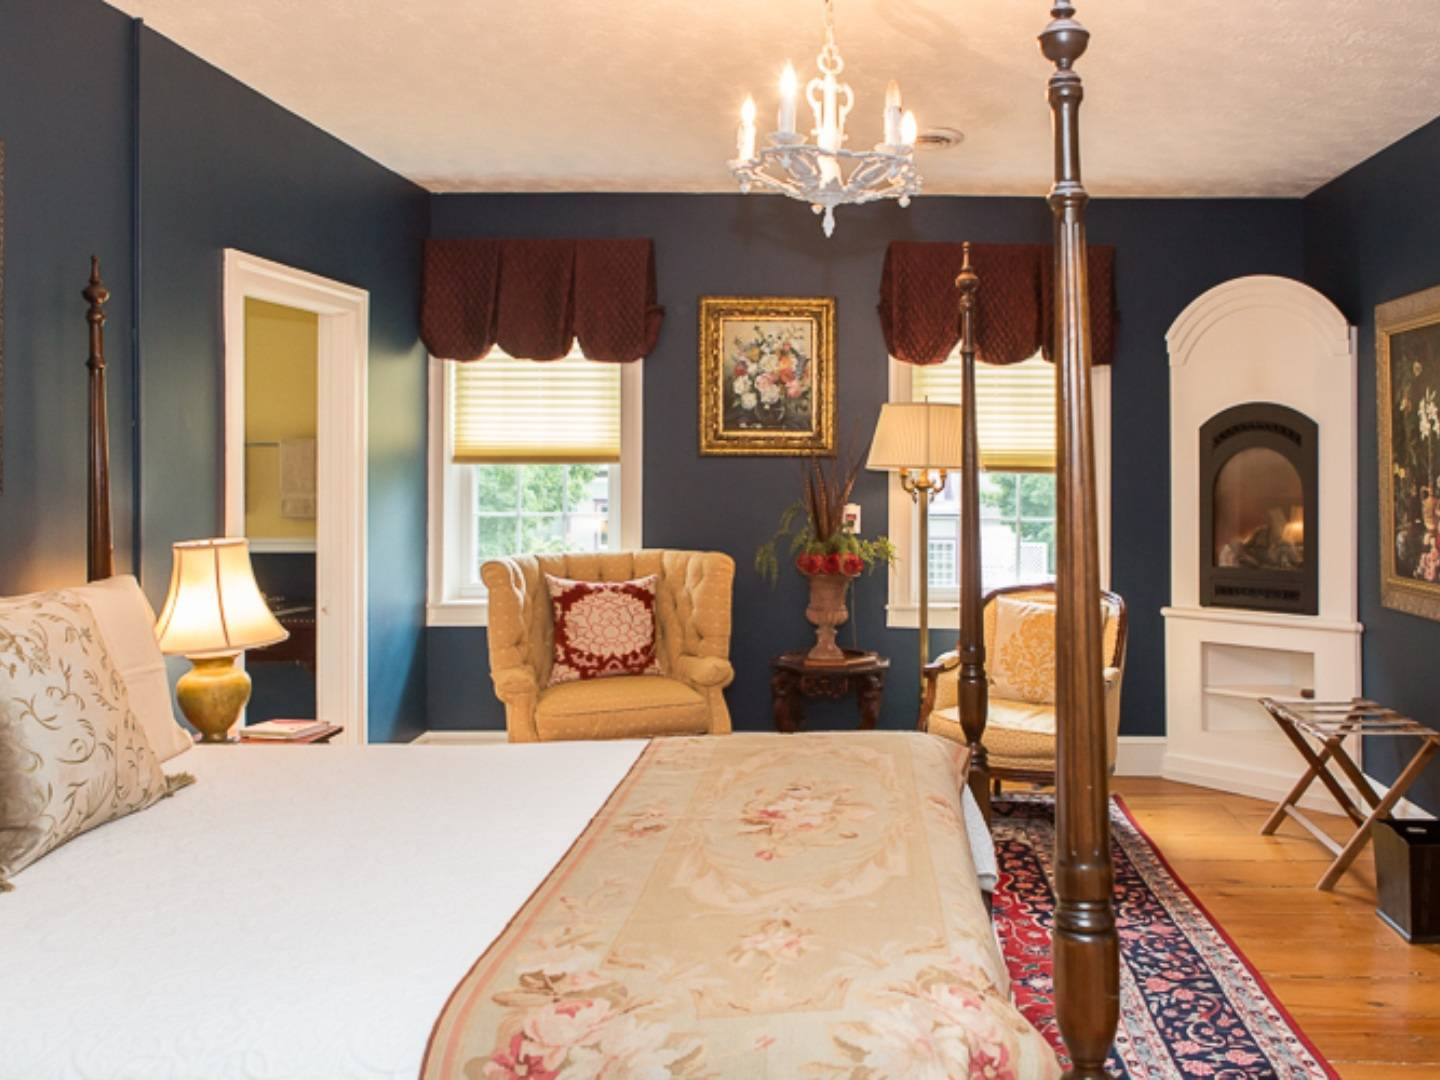 Naples Bed and Breakfast